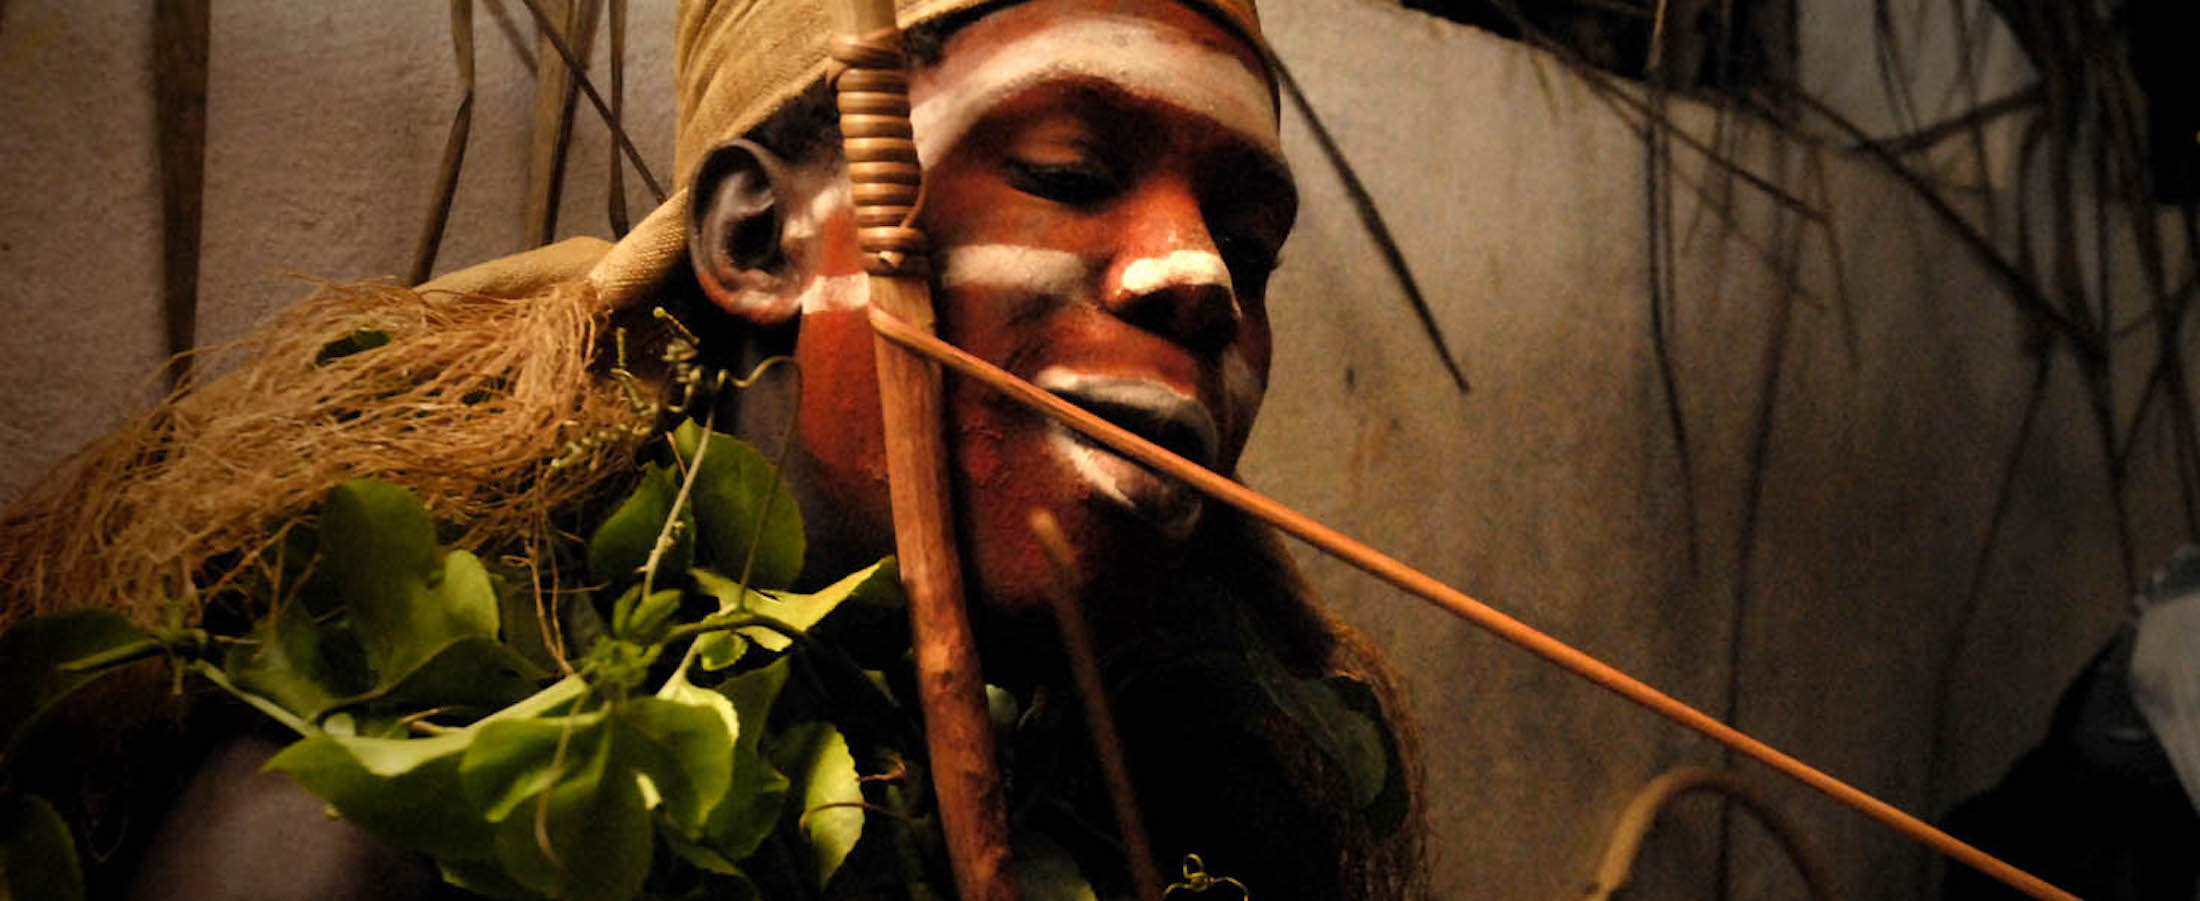 Bwiti man in initiation Iboga ritual with Ibogaine